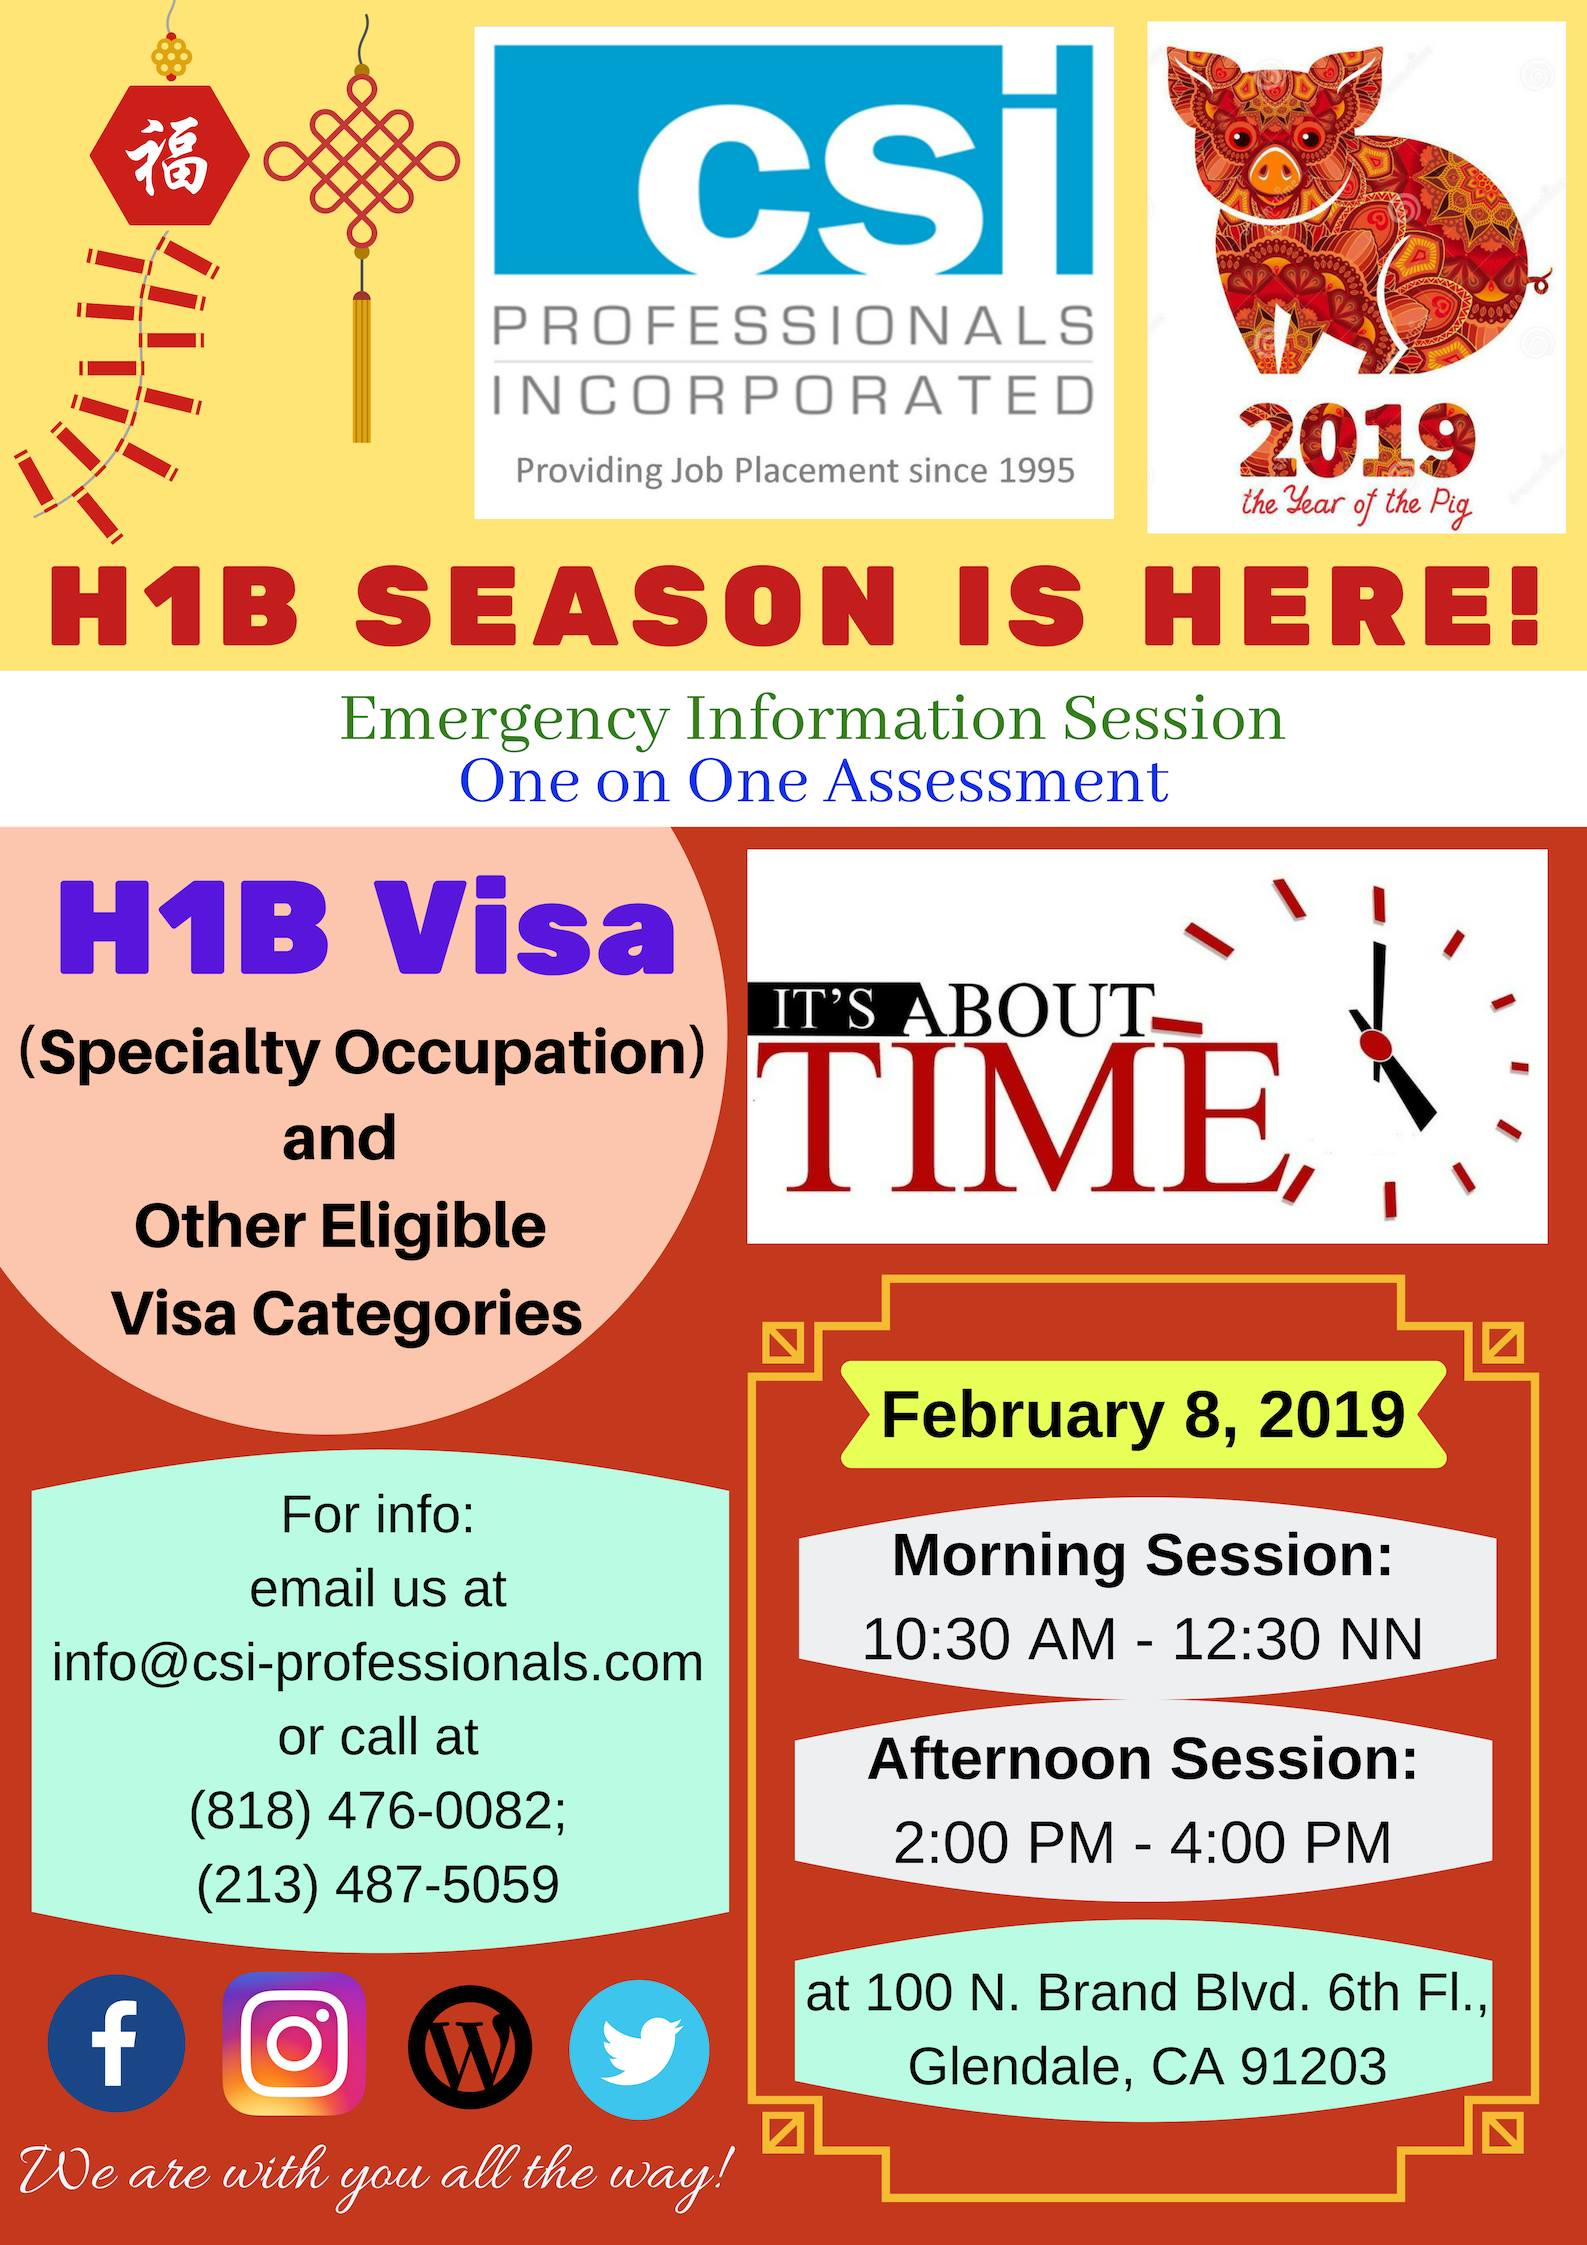 HIRING SEASON FOR H1B & oTHER QUALIFIED OCCUPATION STARTS NOW! | Csi